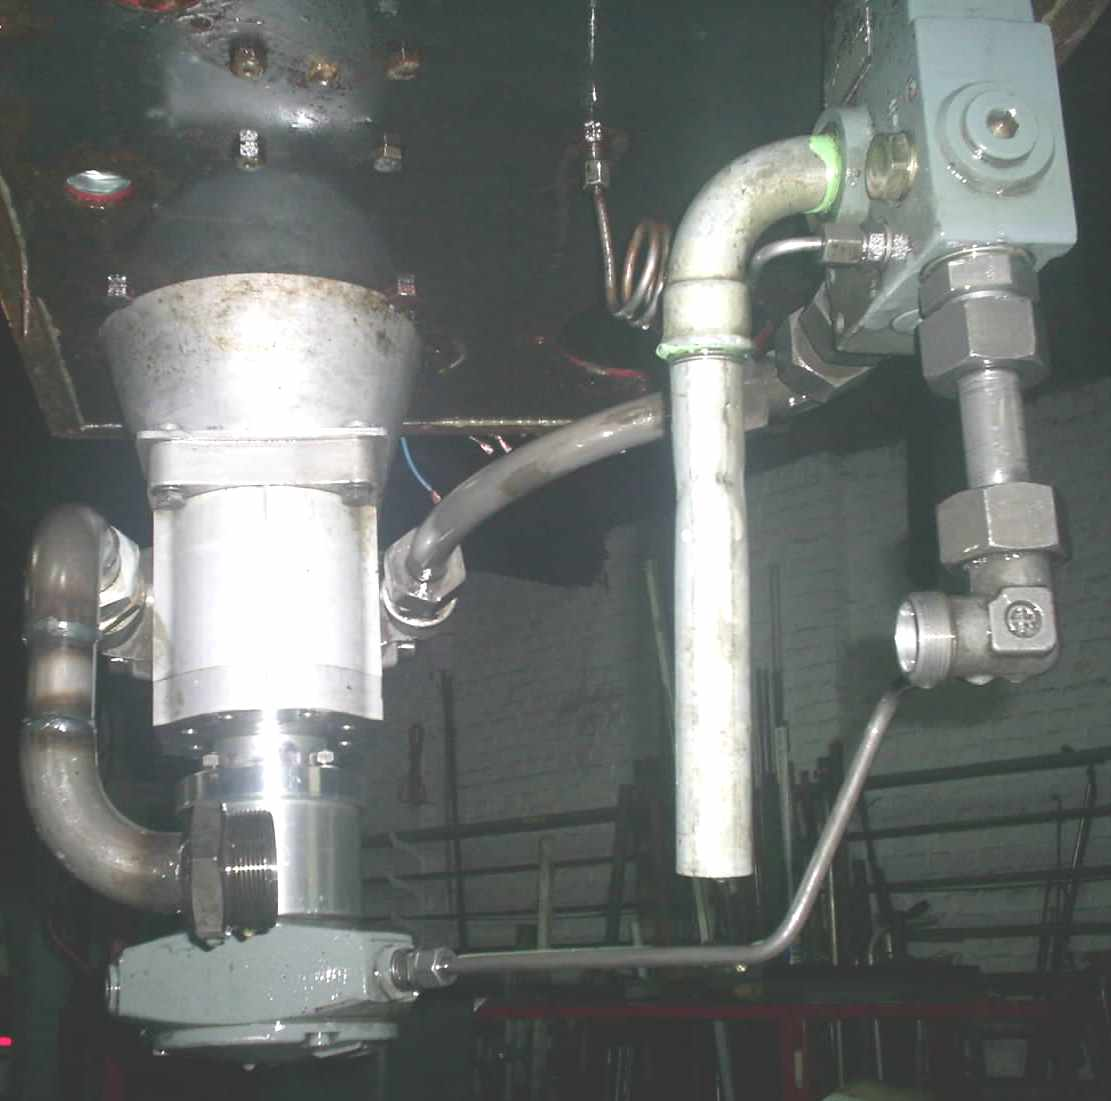 reparation_revision_centrale_hydraulique.JPG